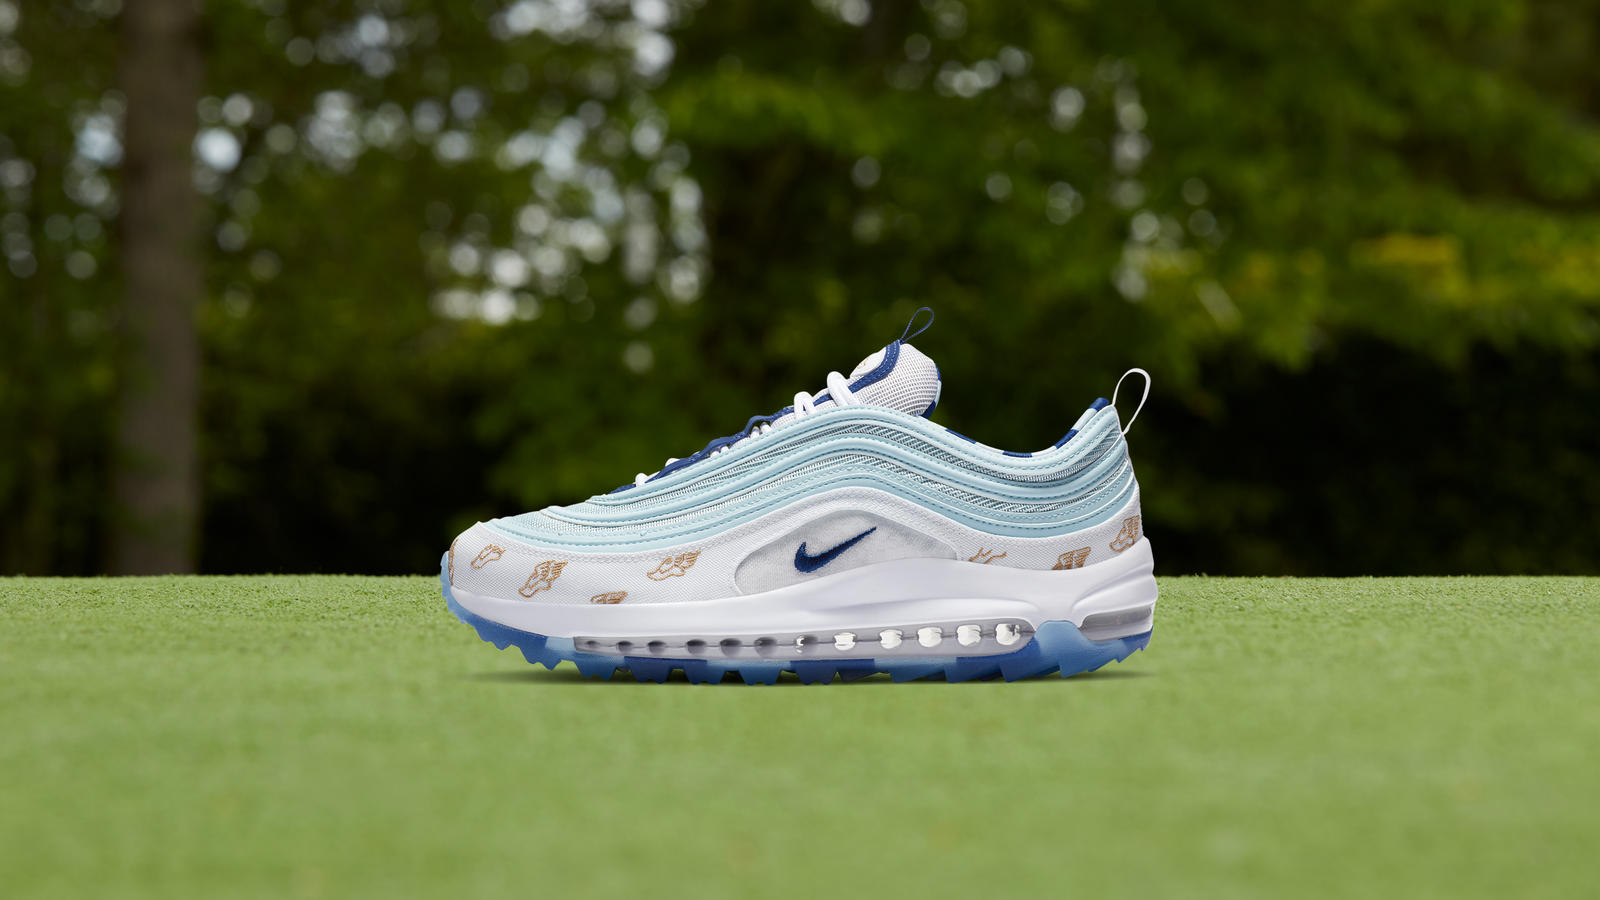 Air Jordan 5 Golf Air Max 97 Golf Official Images and Release Date 1